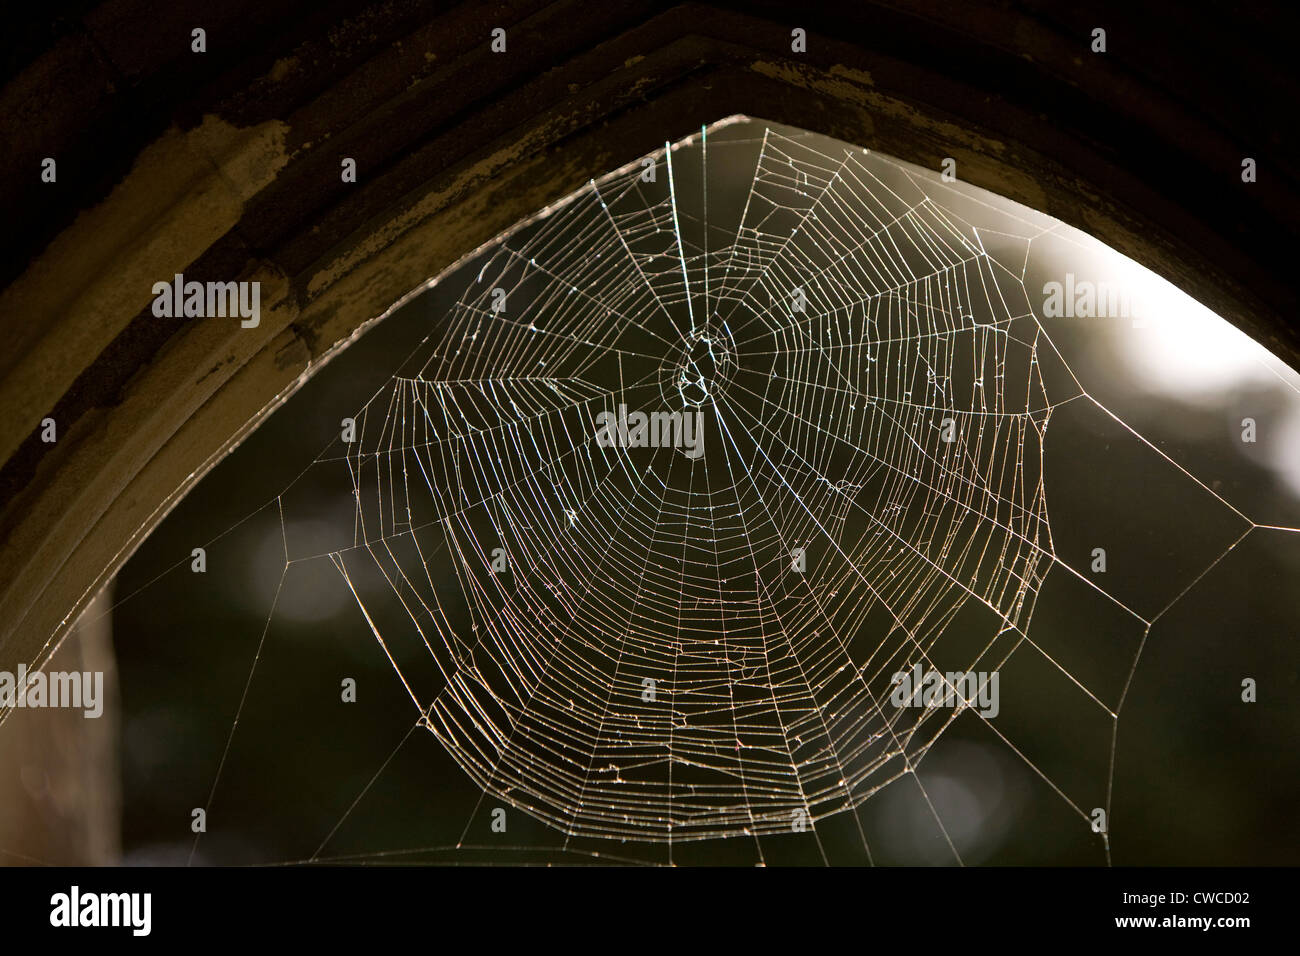 Sun lit spider web in the arch of Salisbury Cathedral, Salisbury England - Stock Image